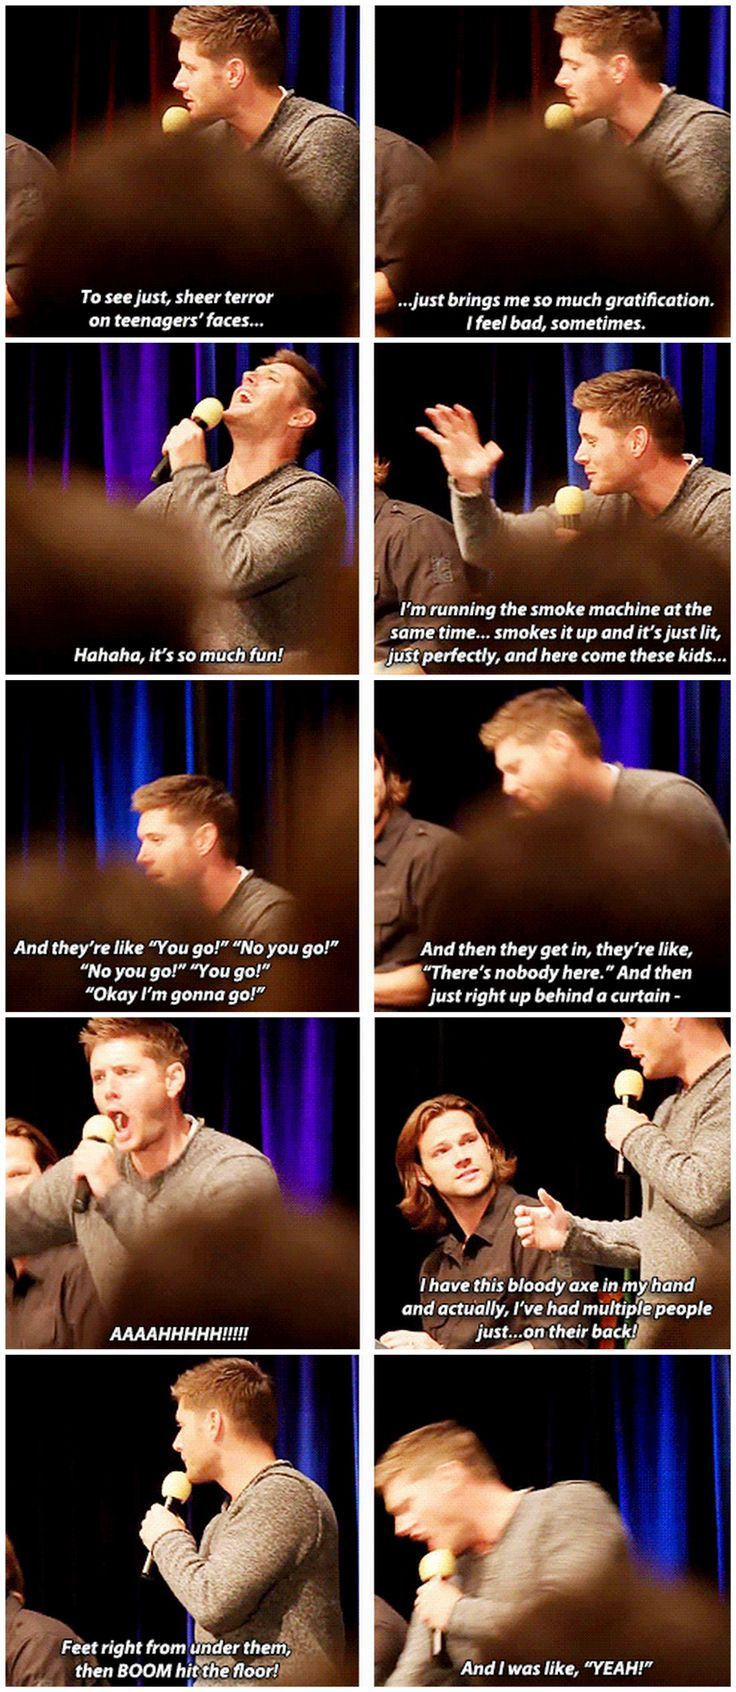 [gifset] Jensen talking about working at a haunted house. #ChiCon12 #Jensen #Jared